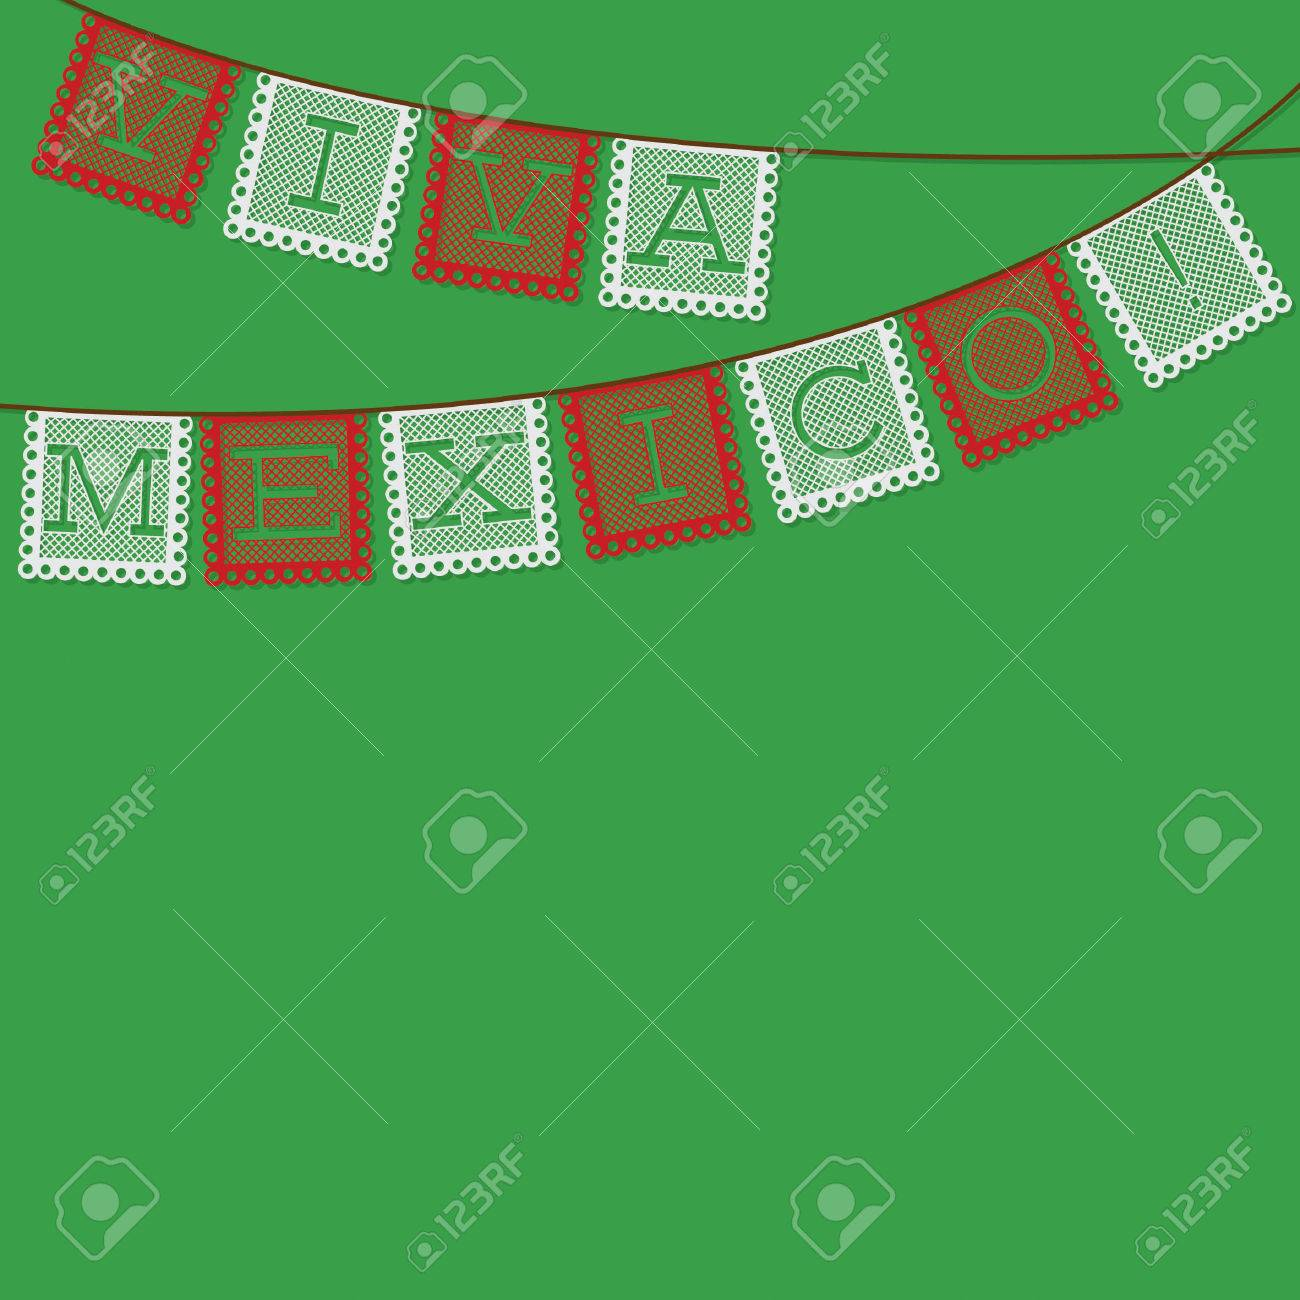 Mexicaine Papel Picado Livre Drapeau Decoration Carte Au Format